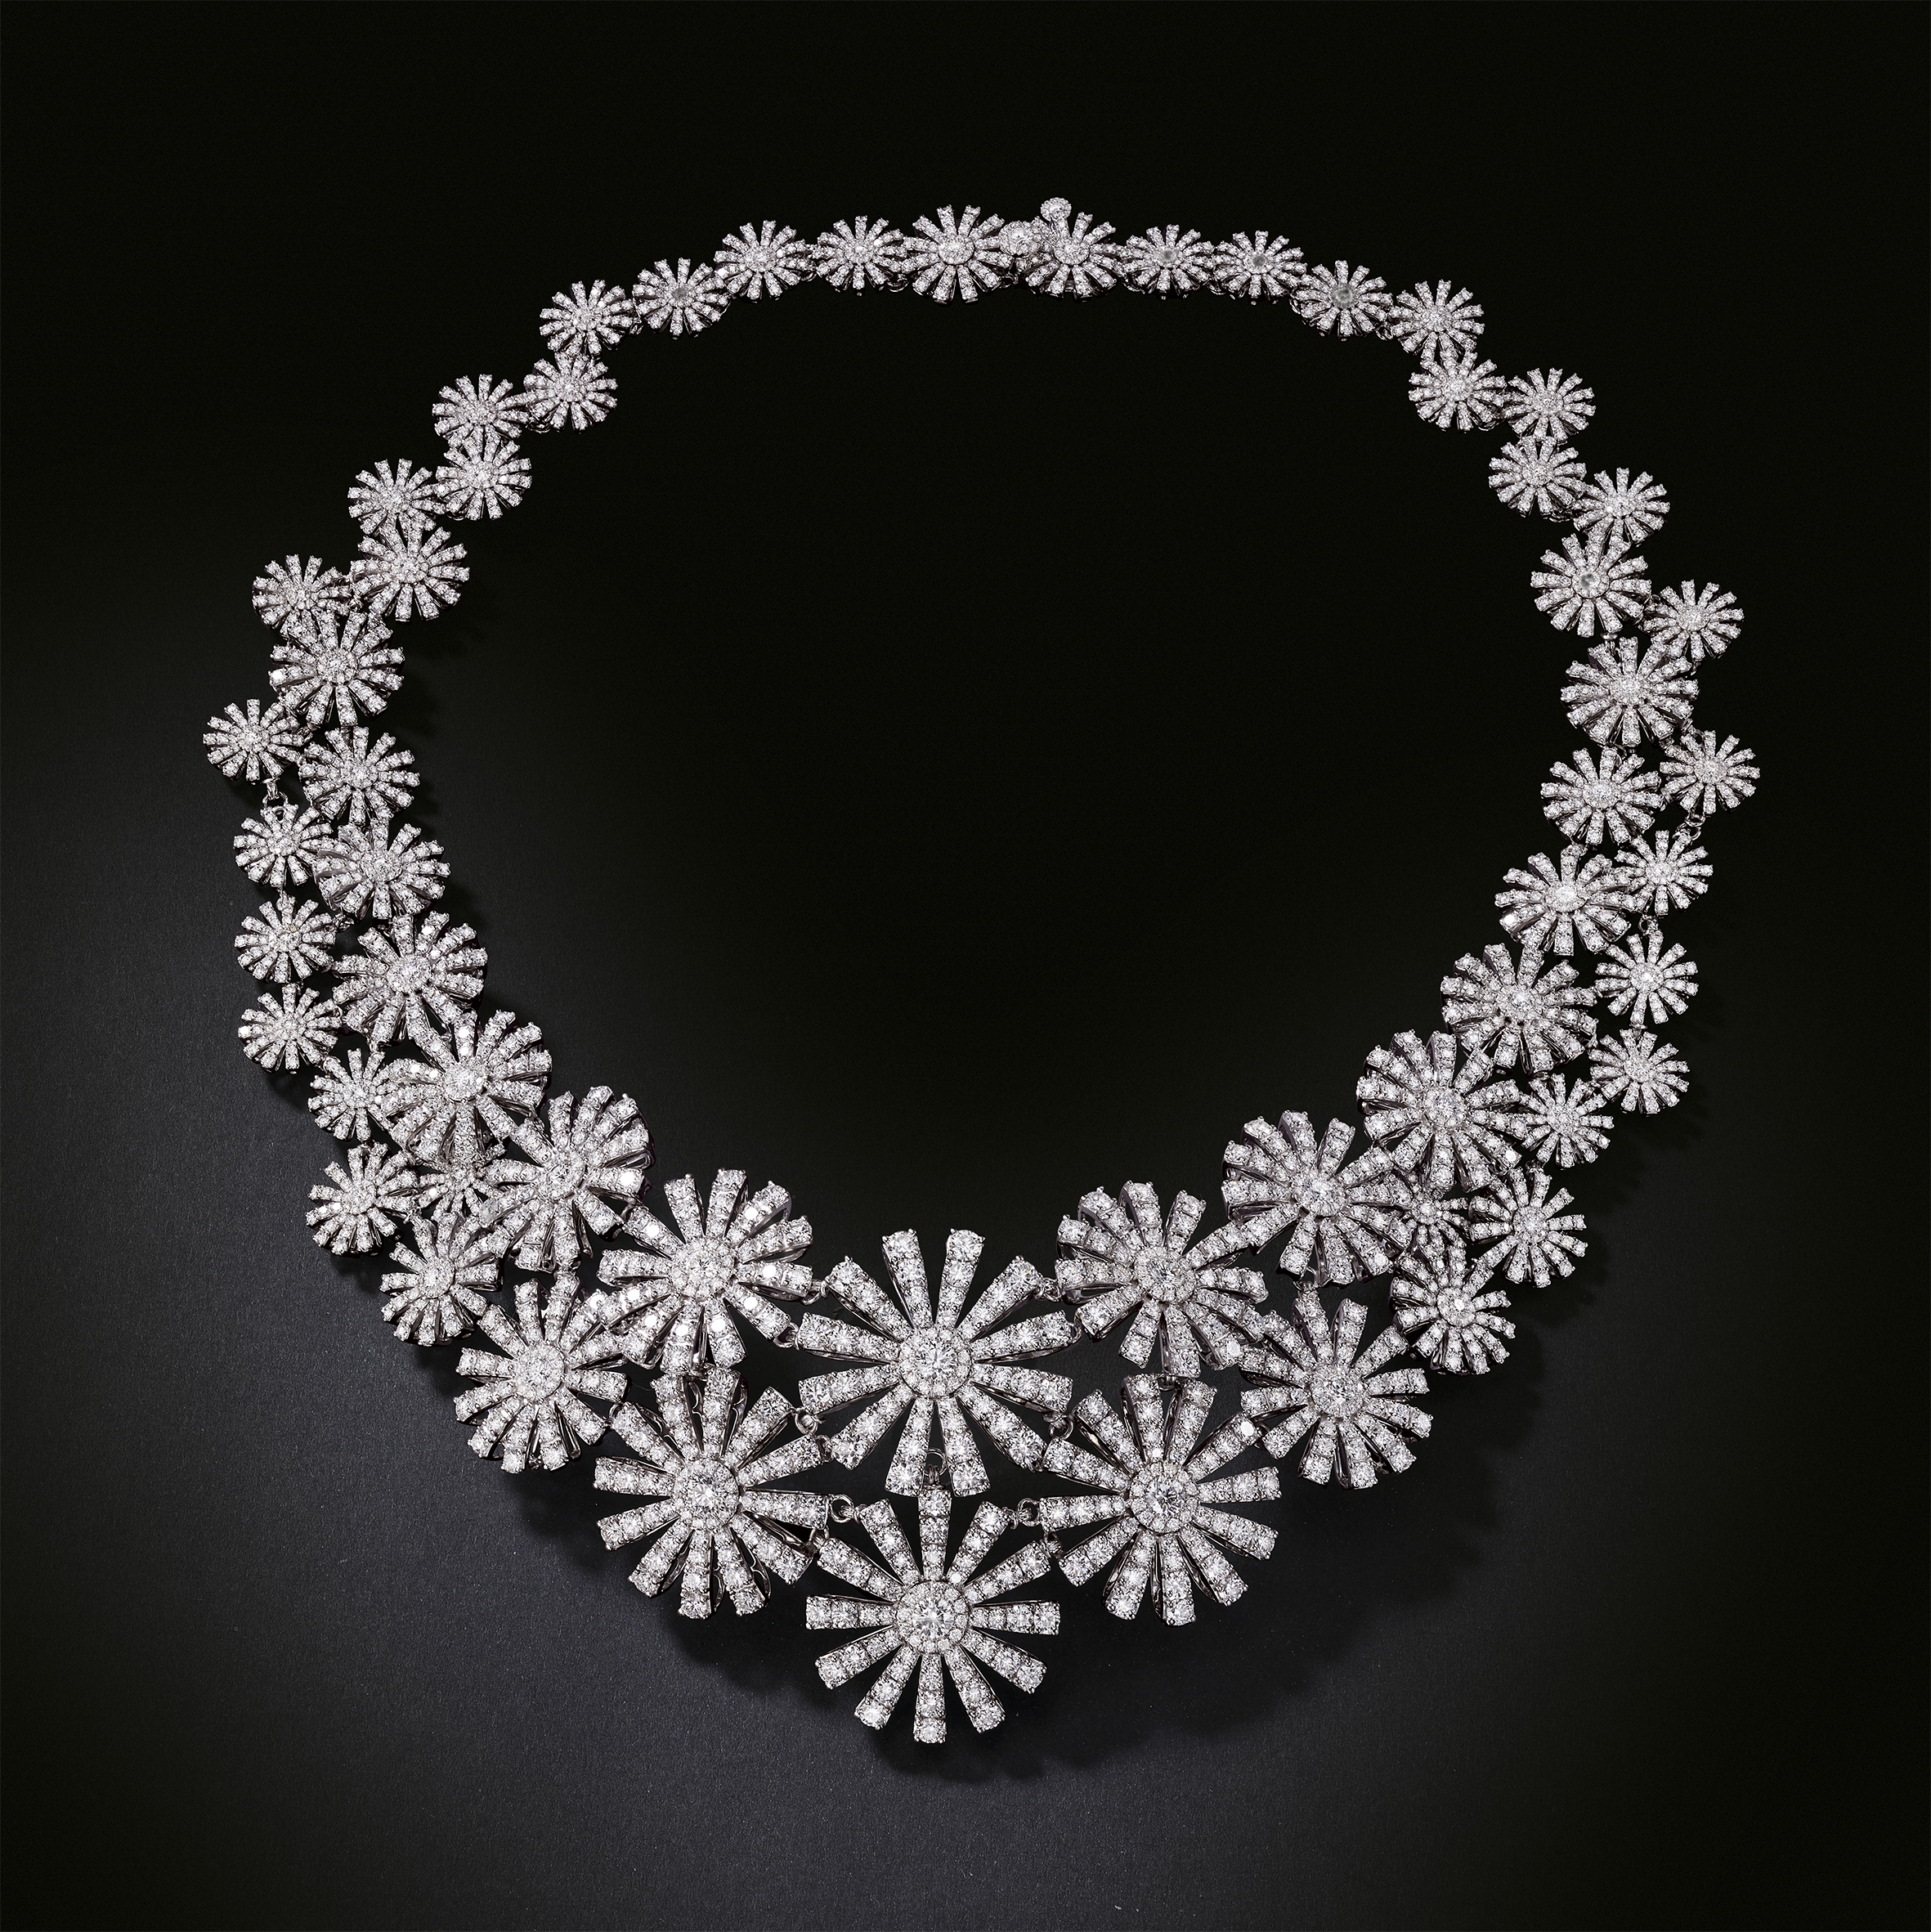 """A necklace from Damiani """"Margherita"""" collection"""